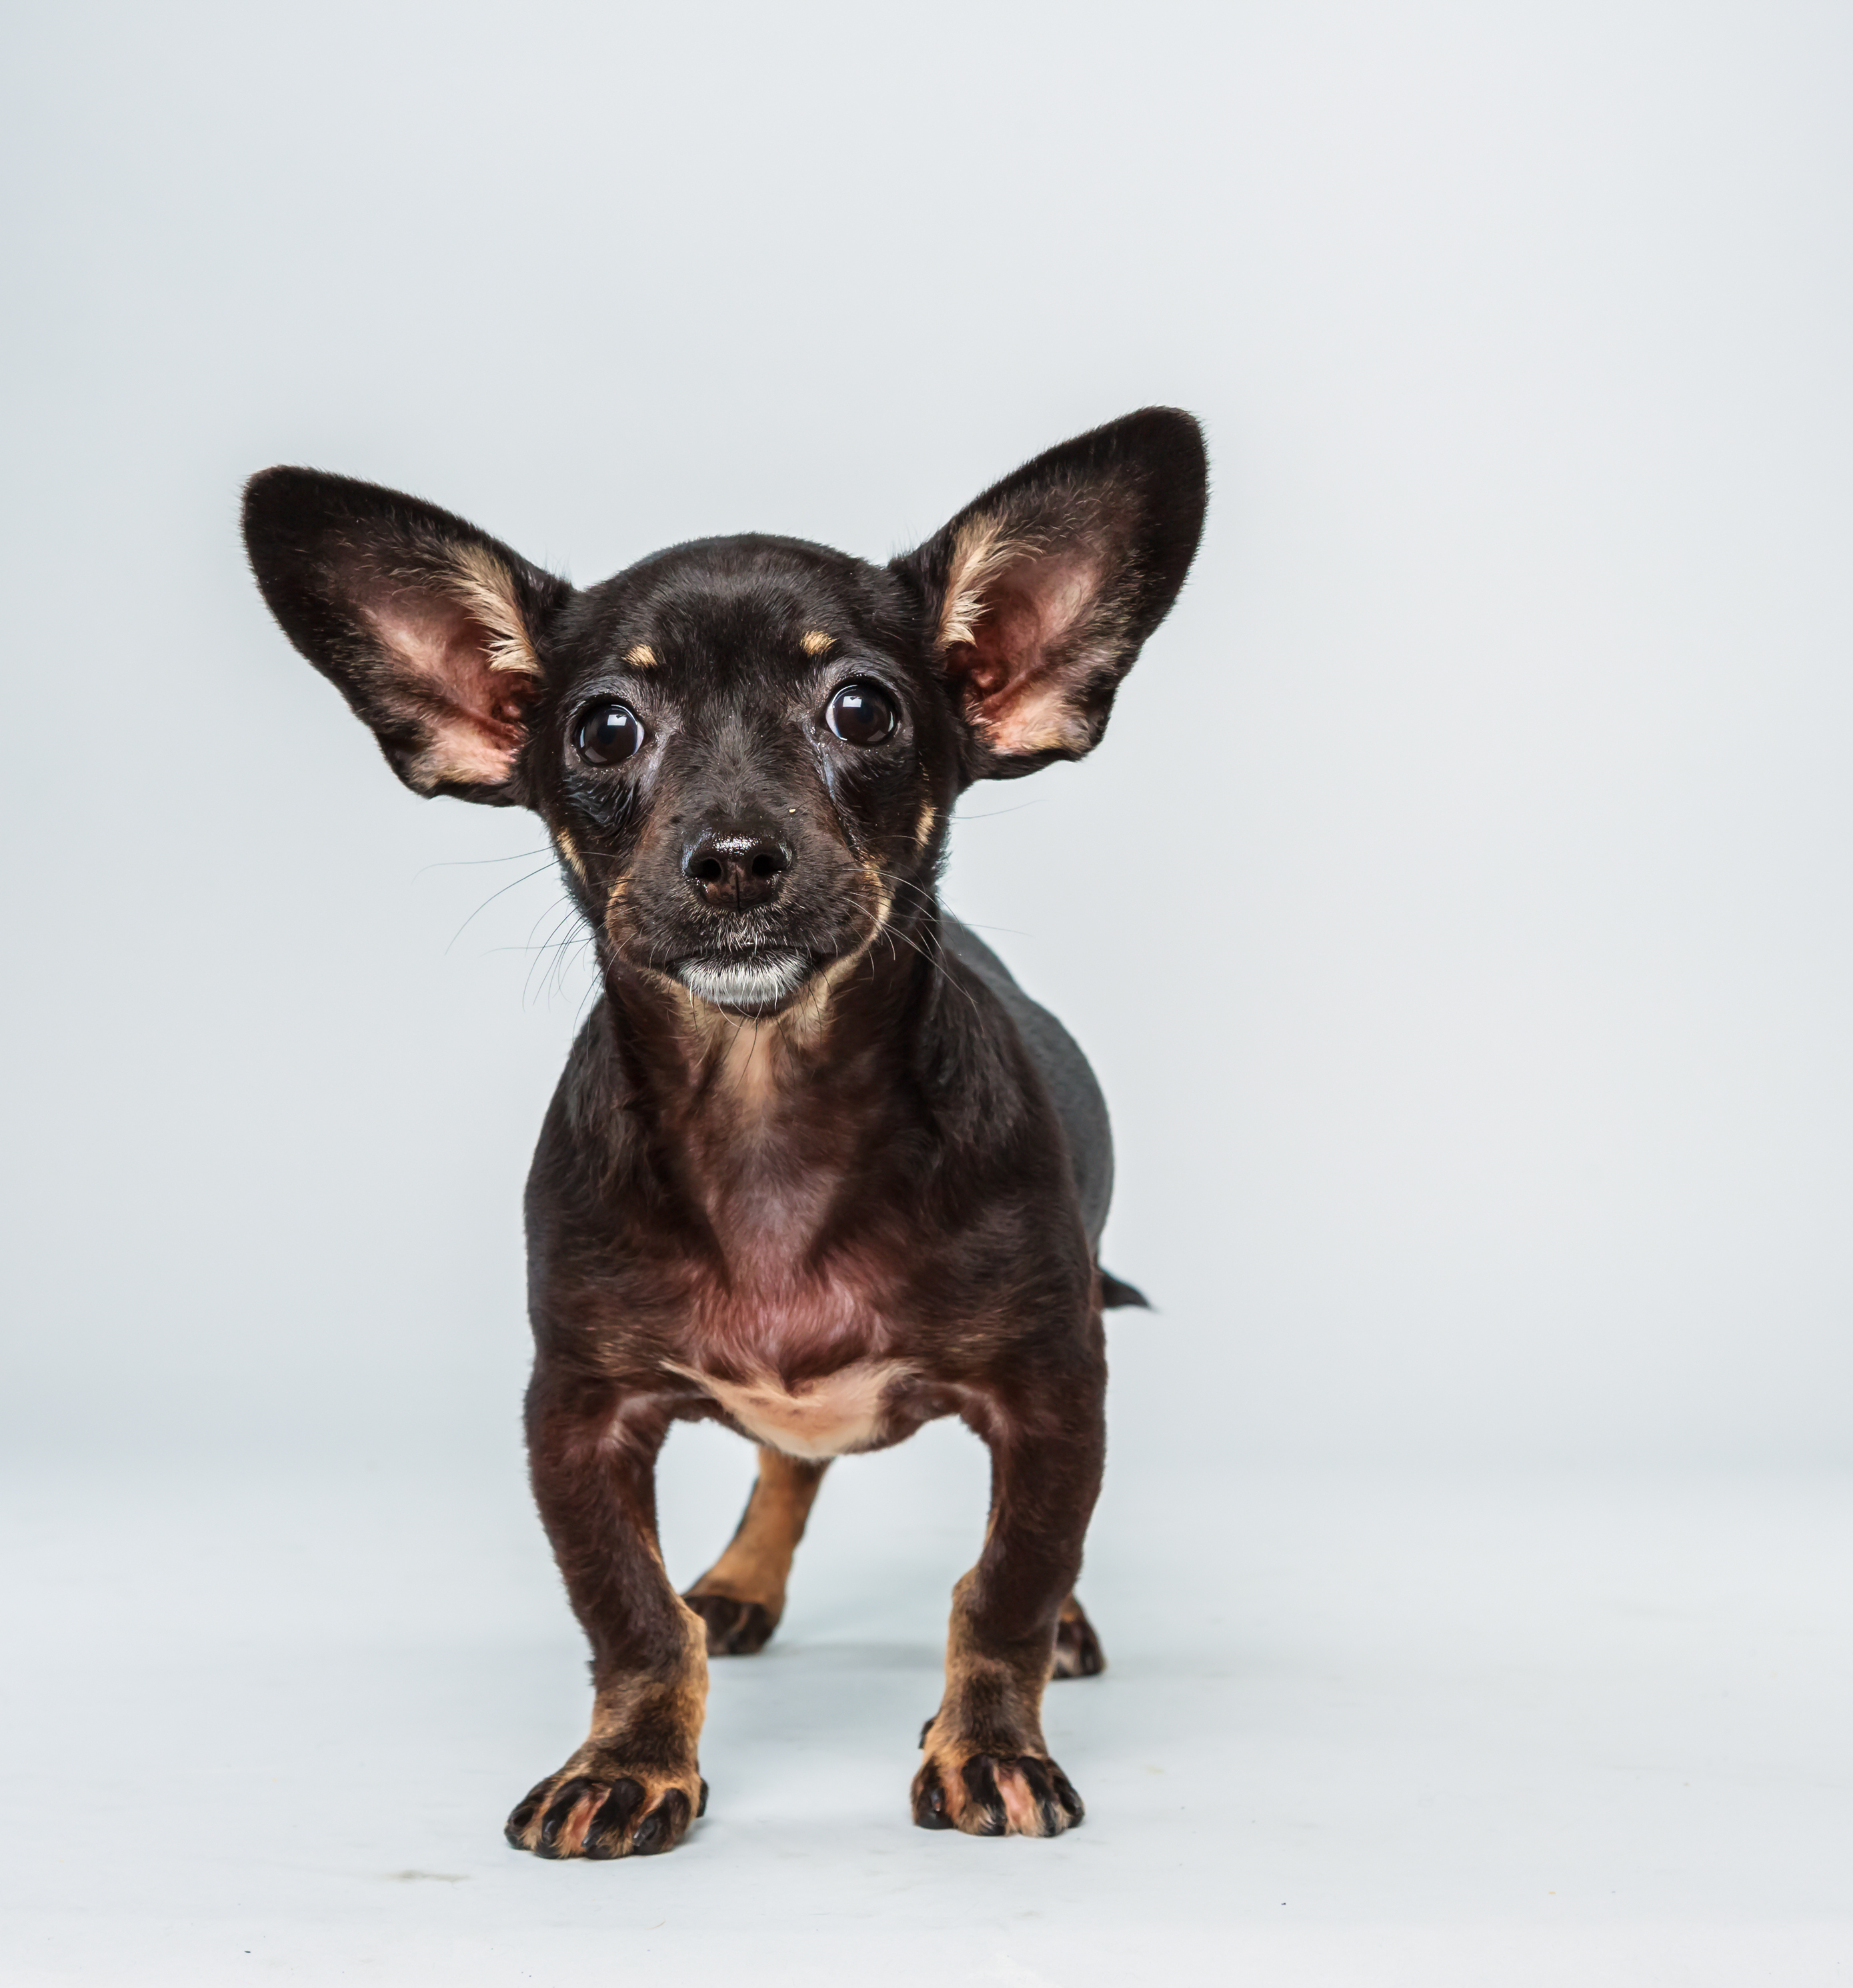 Ullie Age: 12 weeks Breed: Chihuahua dachshund mix Fact: Hates all those Rocky sports cliches about Philadelphia.